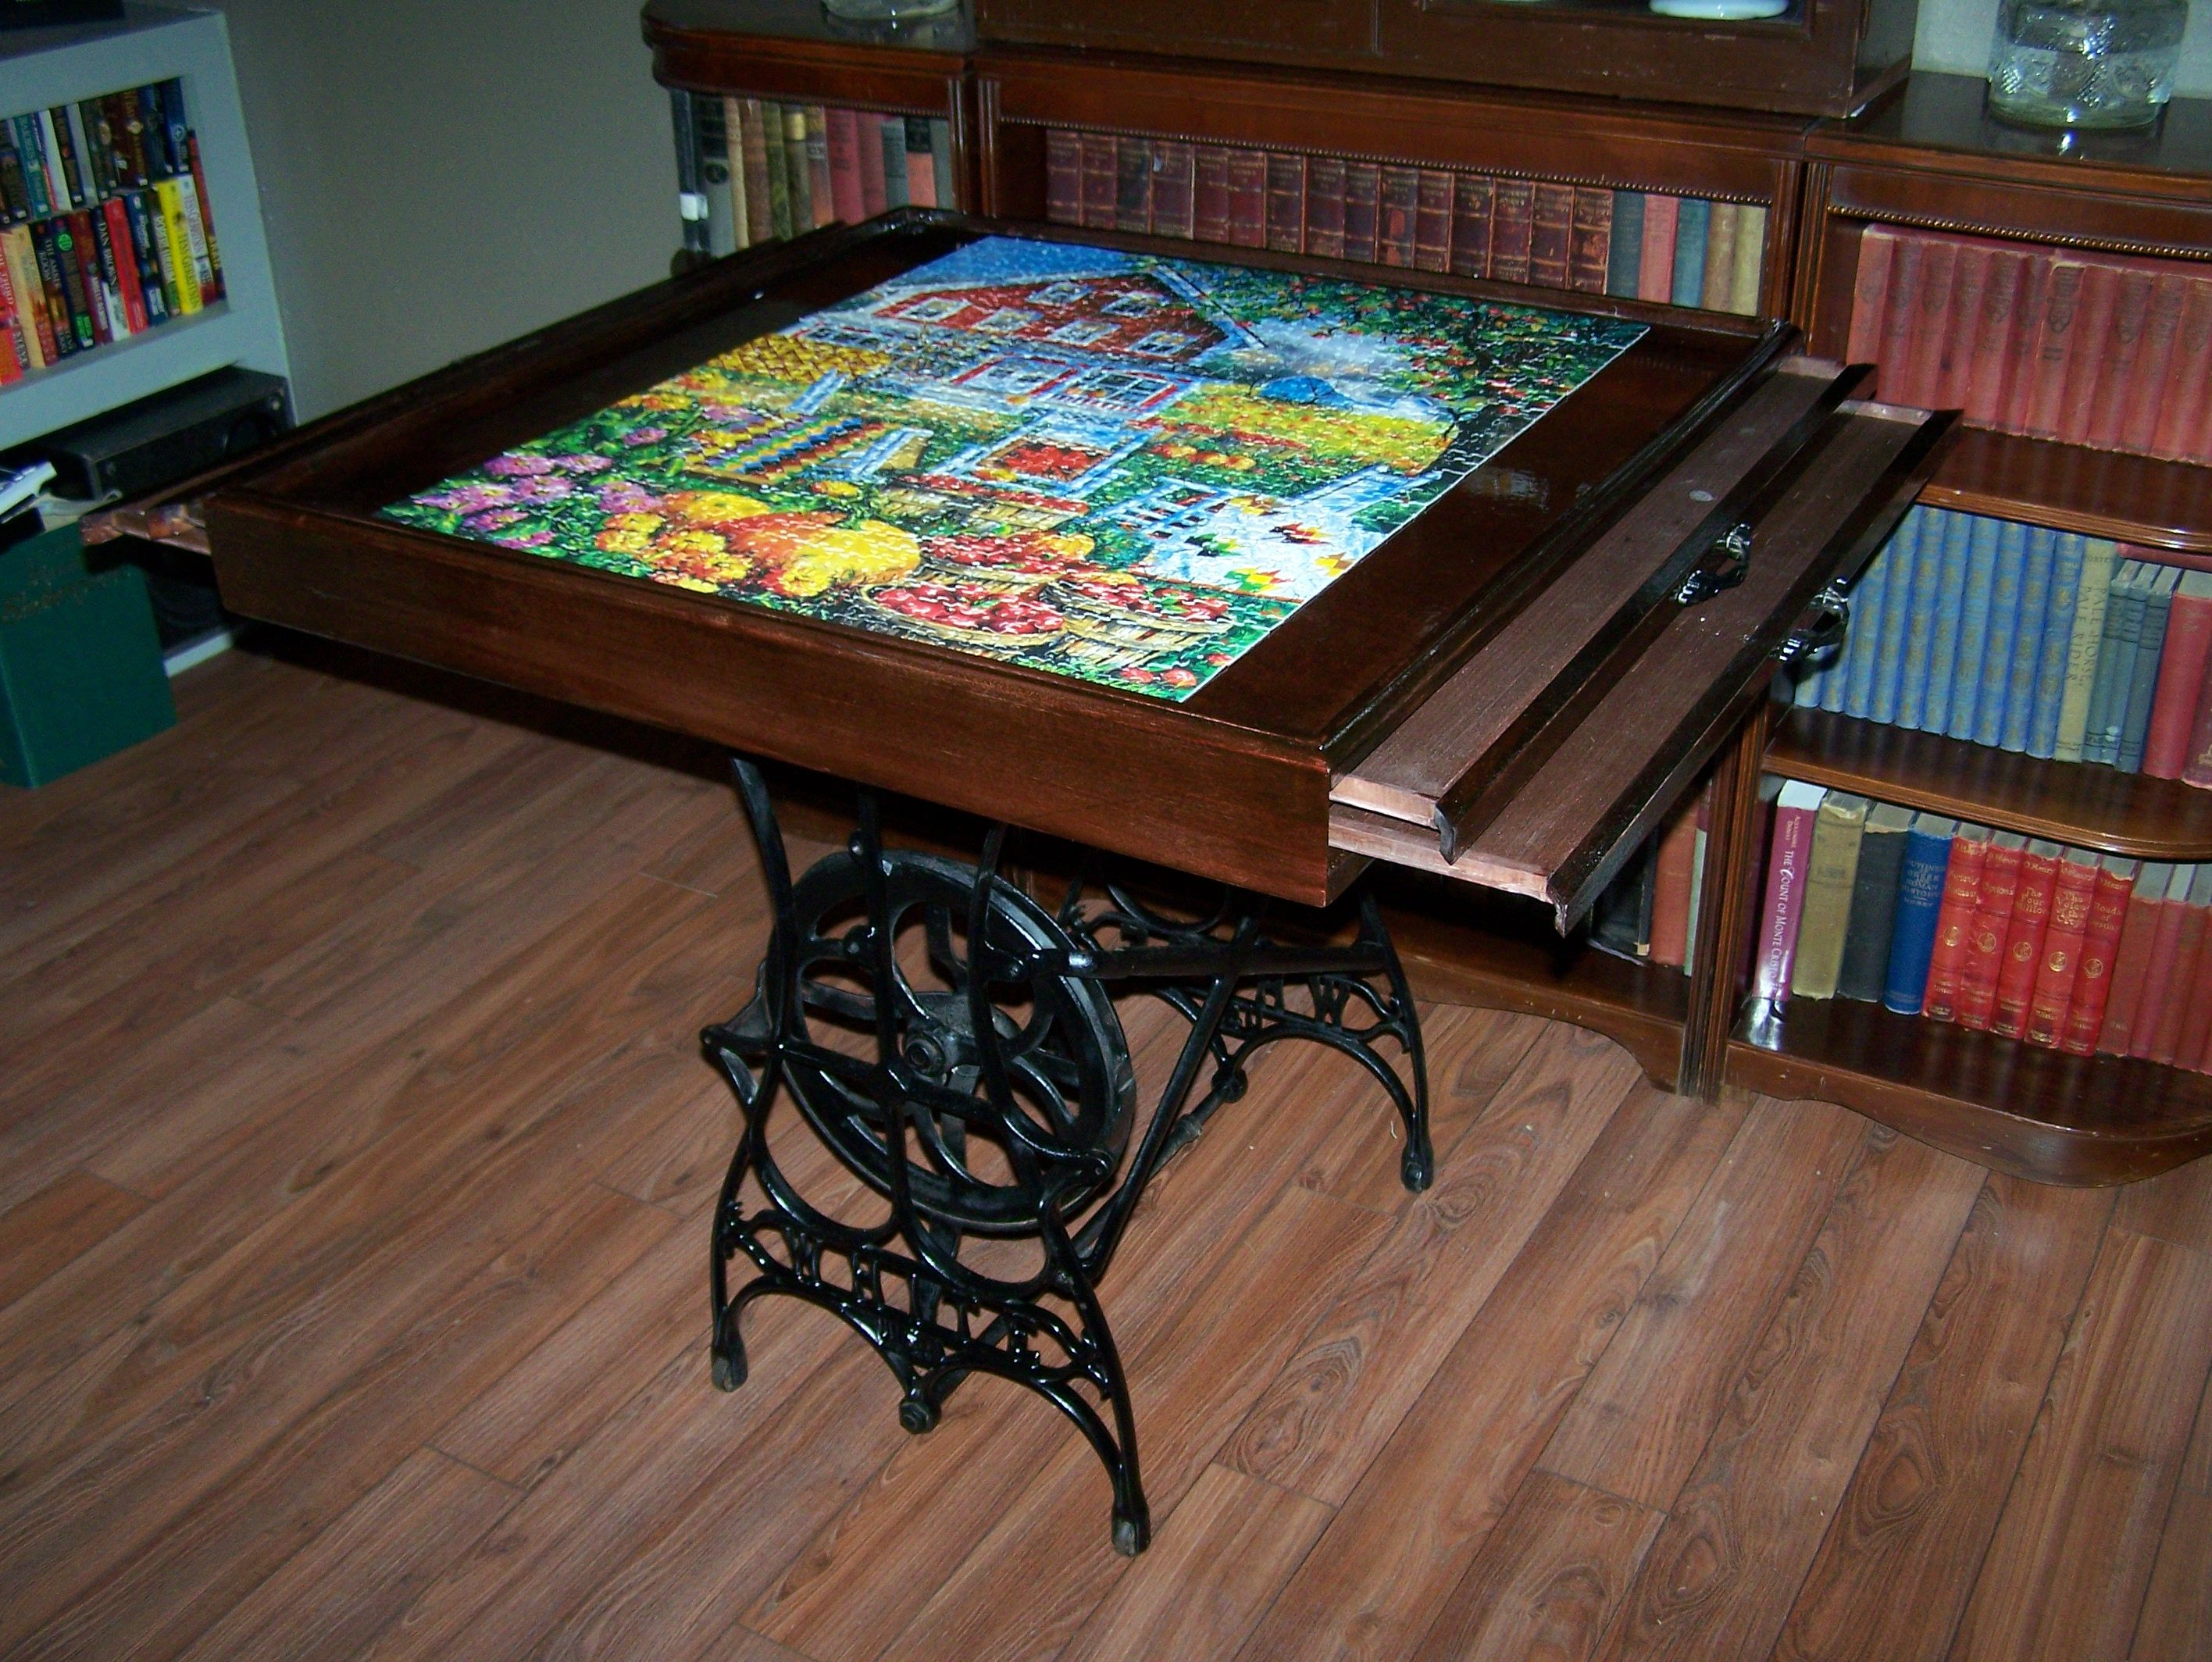 Amusing Puzzle Table And Chairs Pics Decoration Inspiration Fun